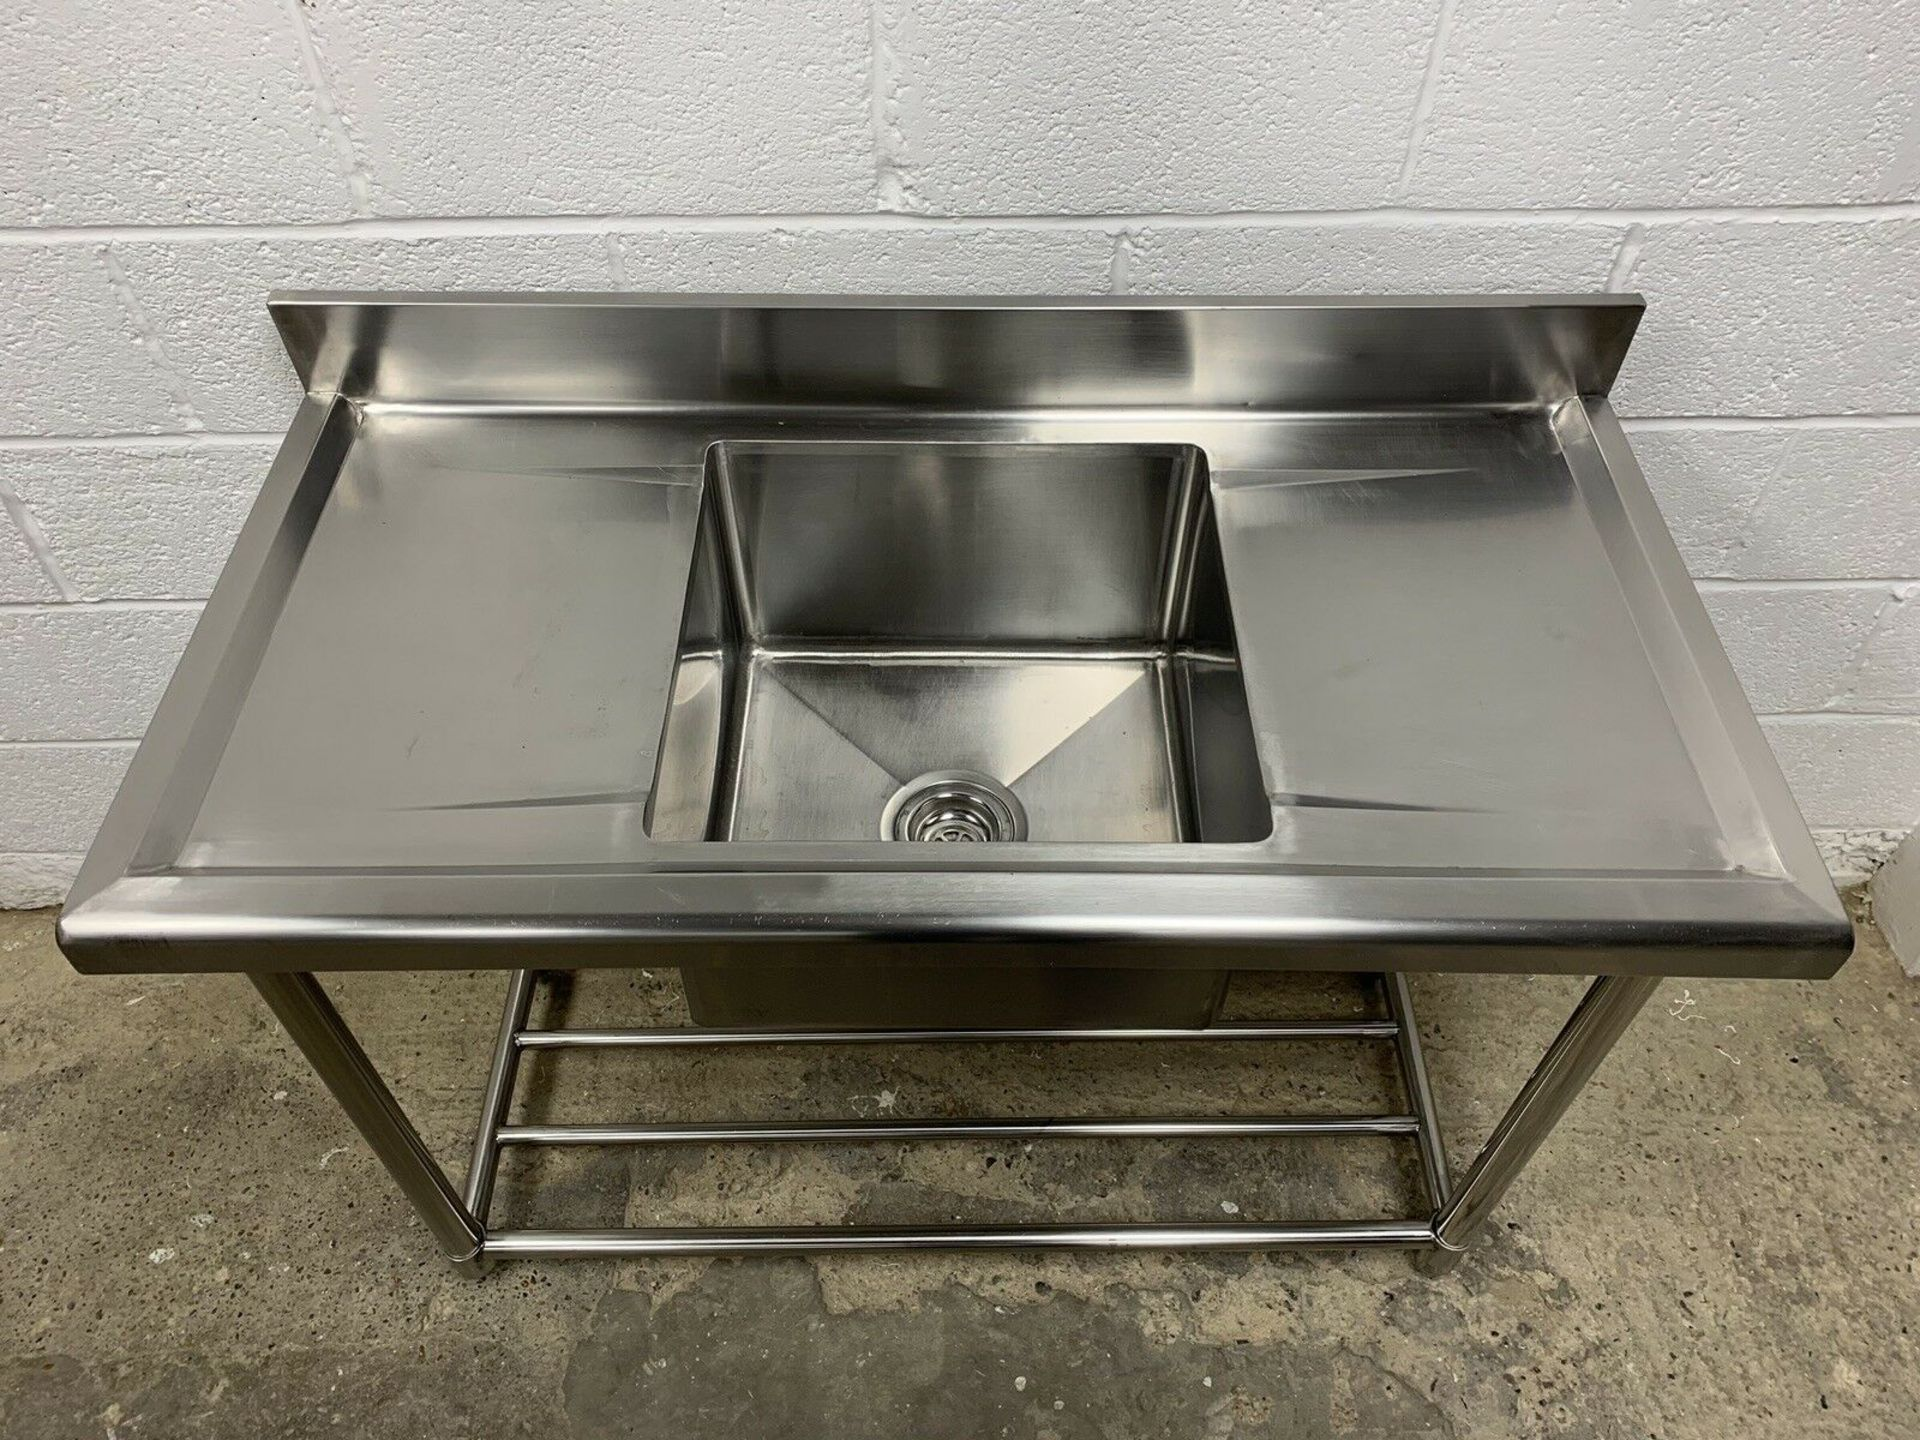 Lot 74 - Stainless Steel Commercial Single Bowl Sink With Double Drainer